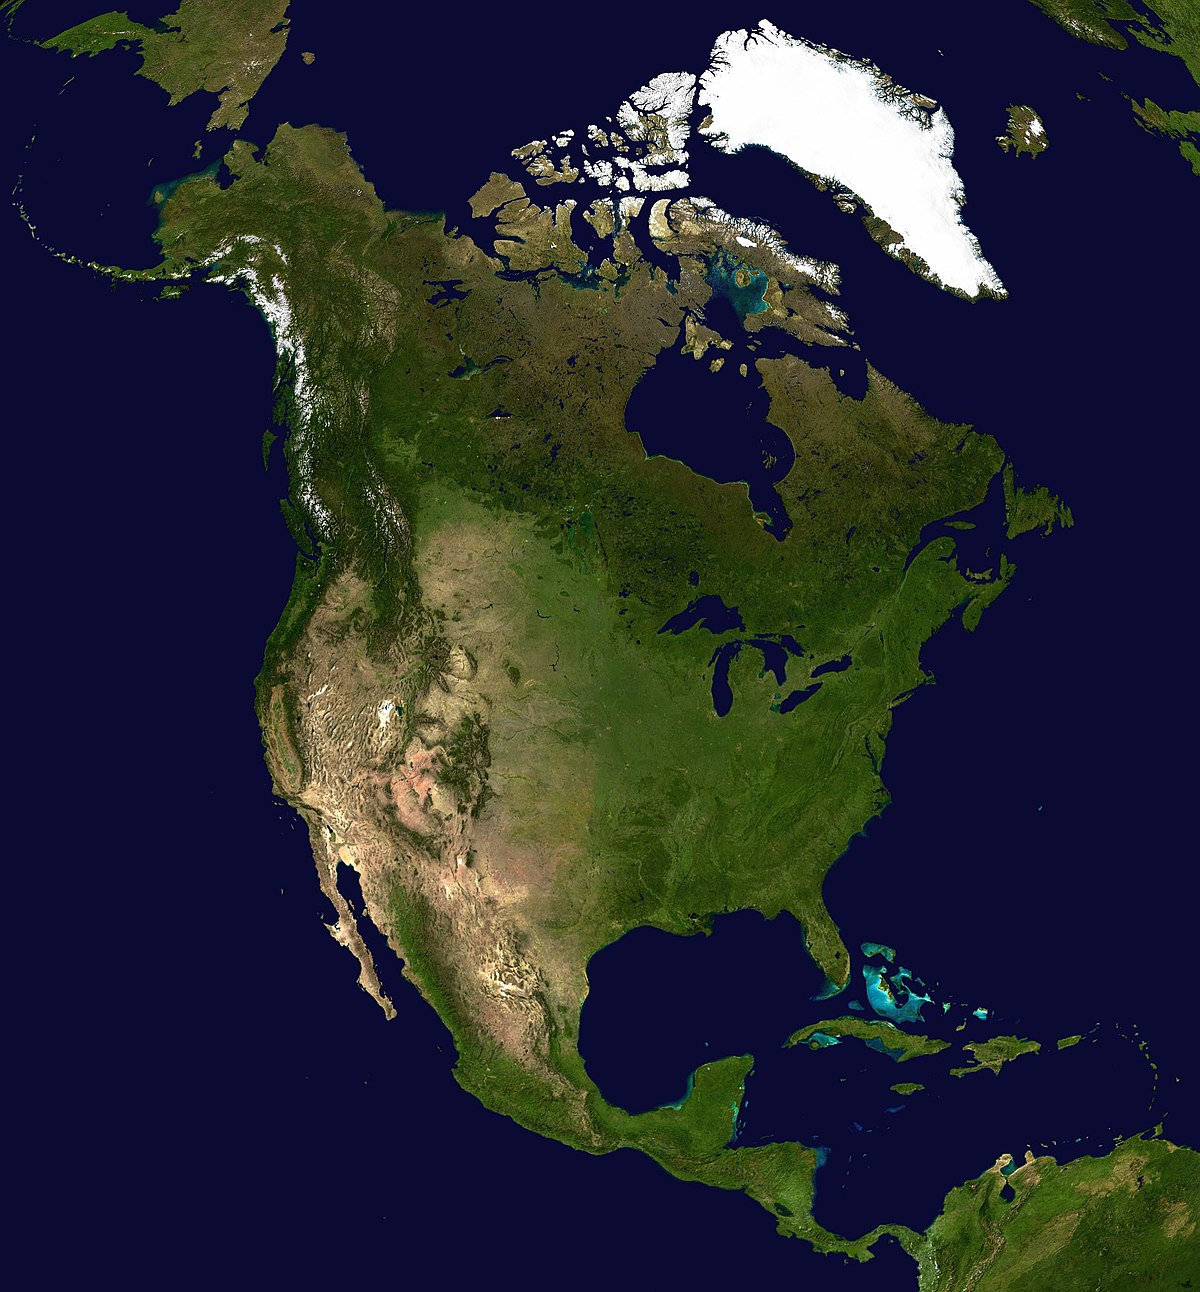 History of North America - Wikipedia on map of the north east region, map of the continent of australia, map of north american countries, map of the north american union, map of the north polar region, map of the north american prairie, drawing of the north american continent, america continent, north and south american continent, map of the north island of new zealand, map of south american continent, map of the north eastern united states, map of southern continent, map of eurasian continent, map of the north america, map of the north africa, map of the african continent, map of european continent, map of the north european plain,